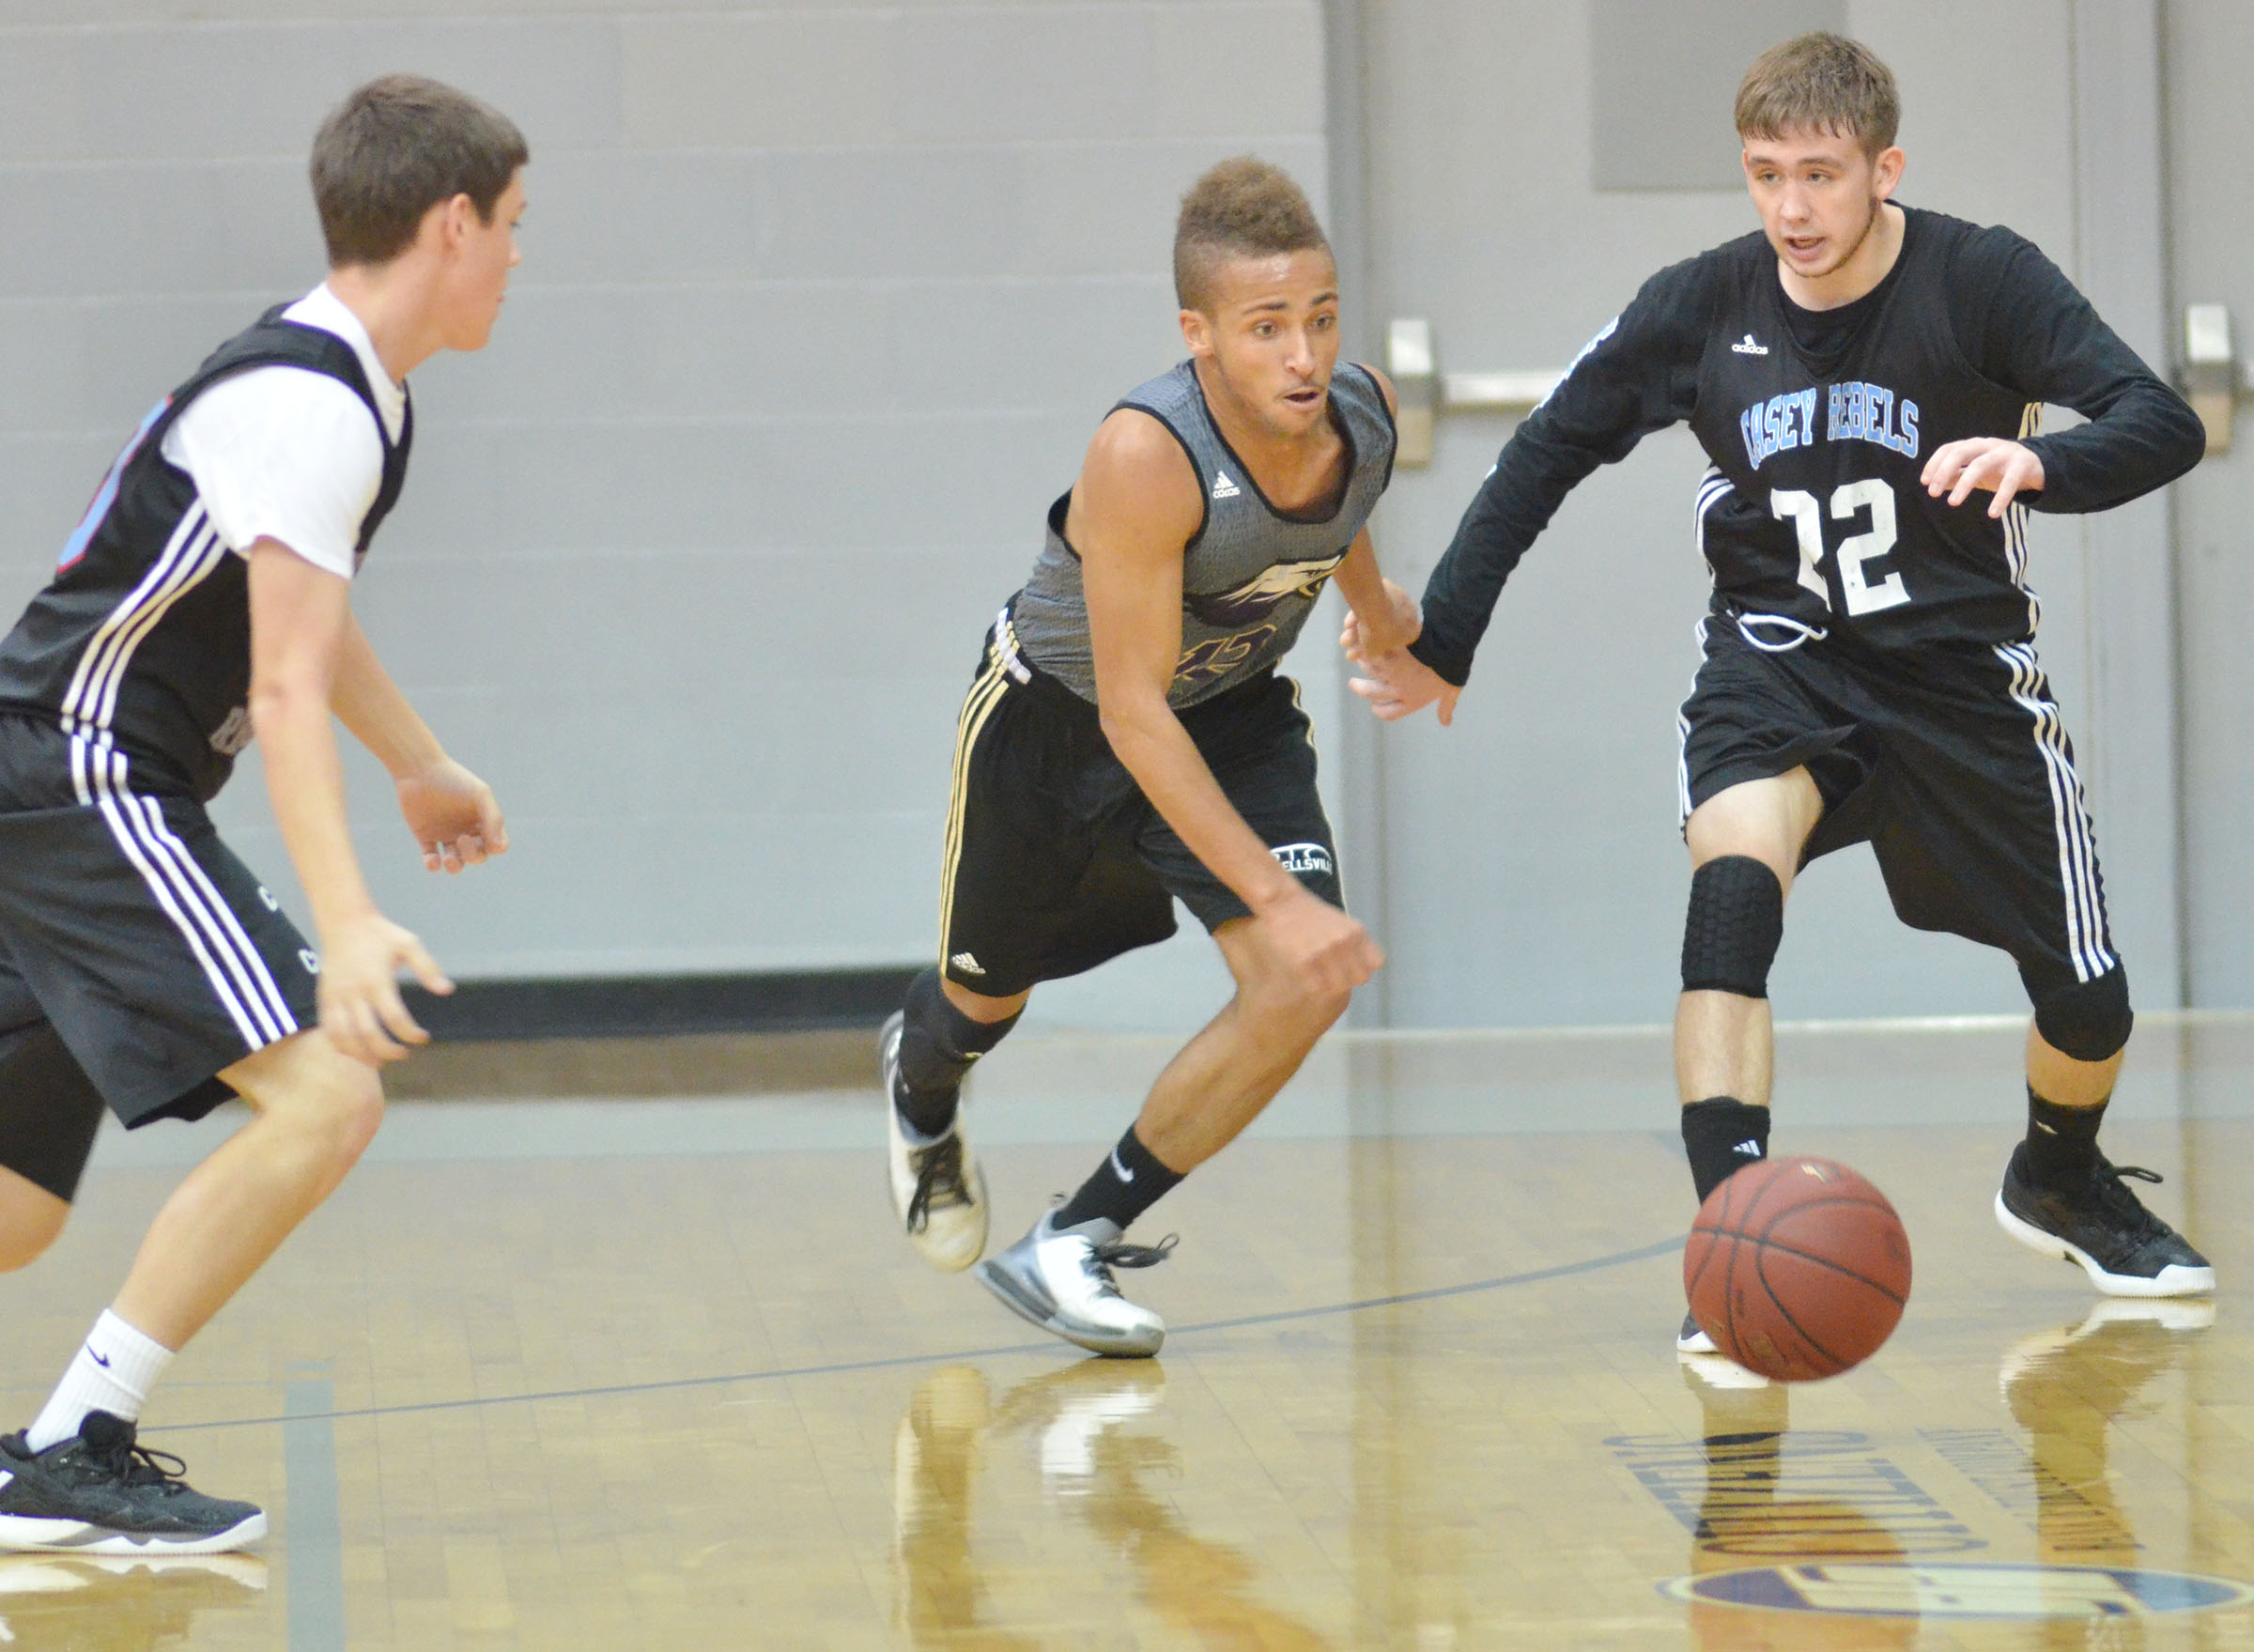 CHS junior Ethan Lay battles for the ball.